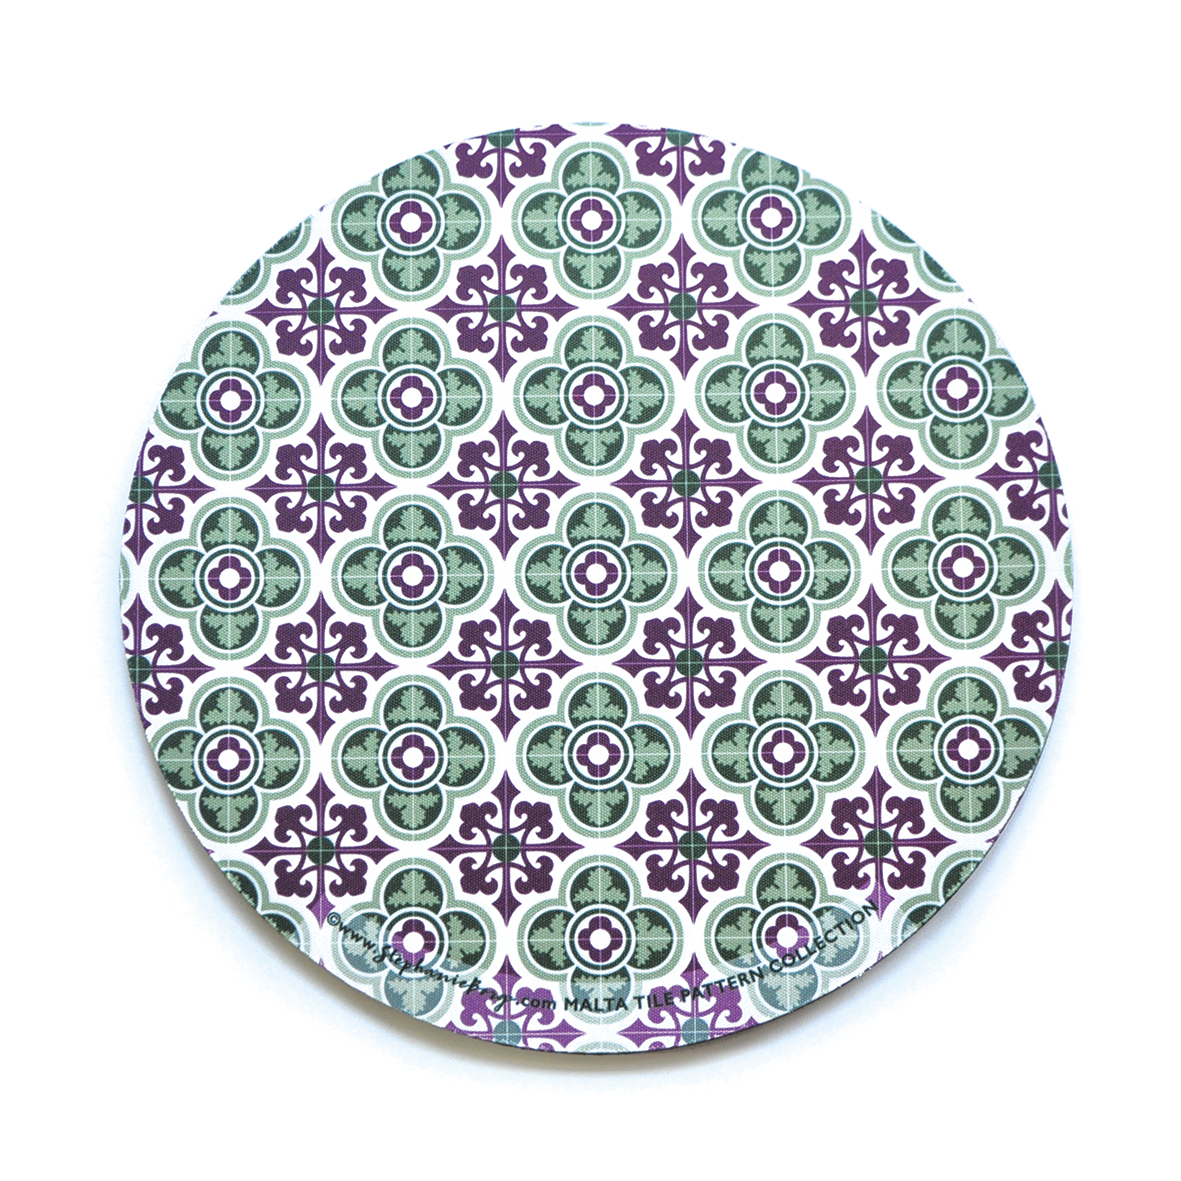 Mousepad with Maltese Tile Patterns, pattern no.6